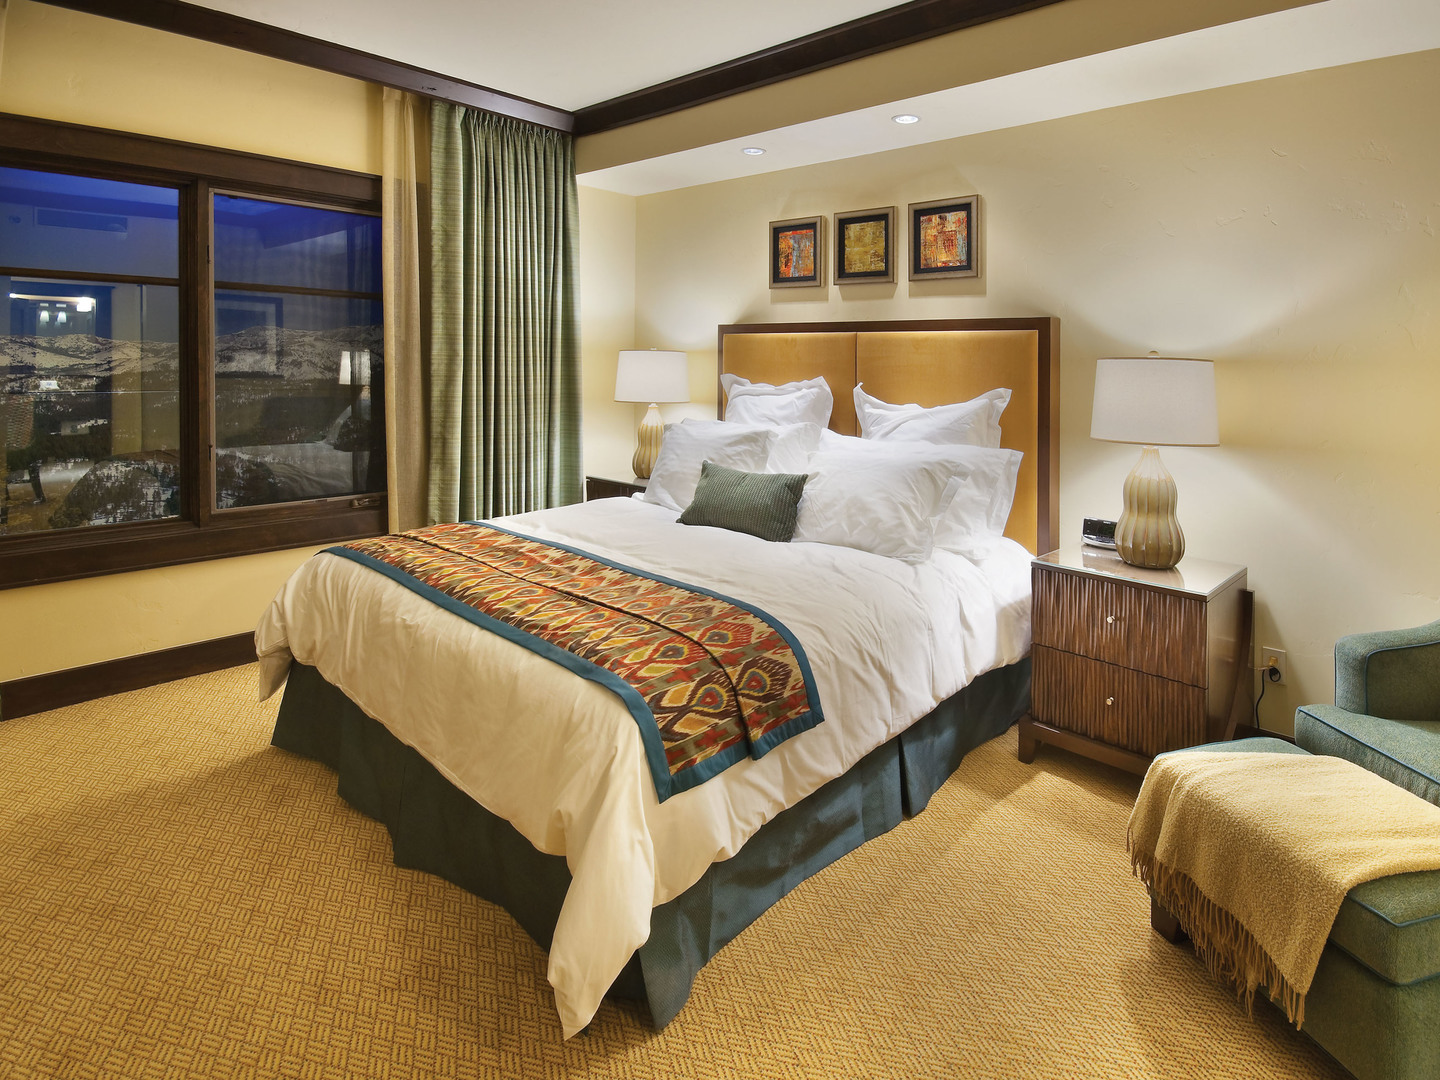 The Ritz-Carlton Club<span class='trademark'>®</span>, Lake Tahoe Residence Master Bedroom. The Ritz-Carlton Club<span class='trademark'>®</span>, Lake Tahoe is located in Truckee, California United States.